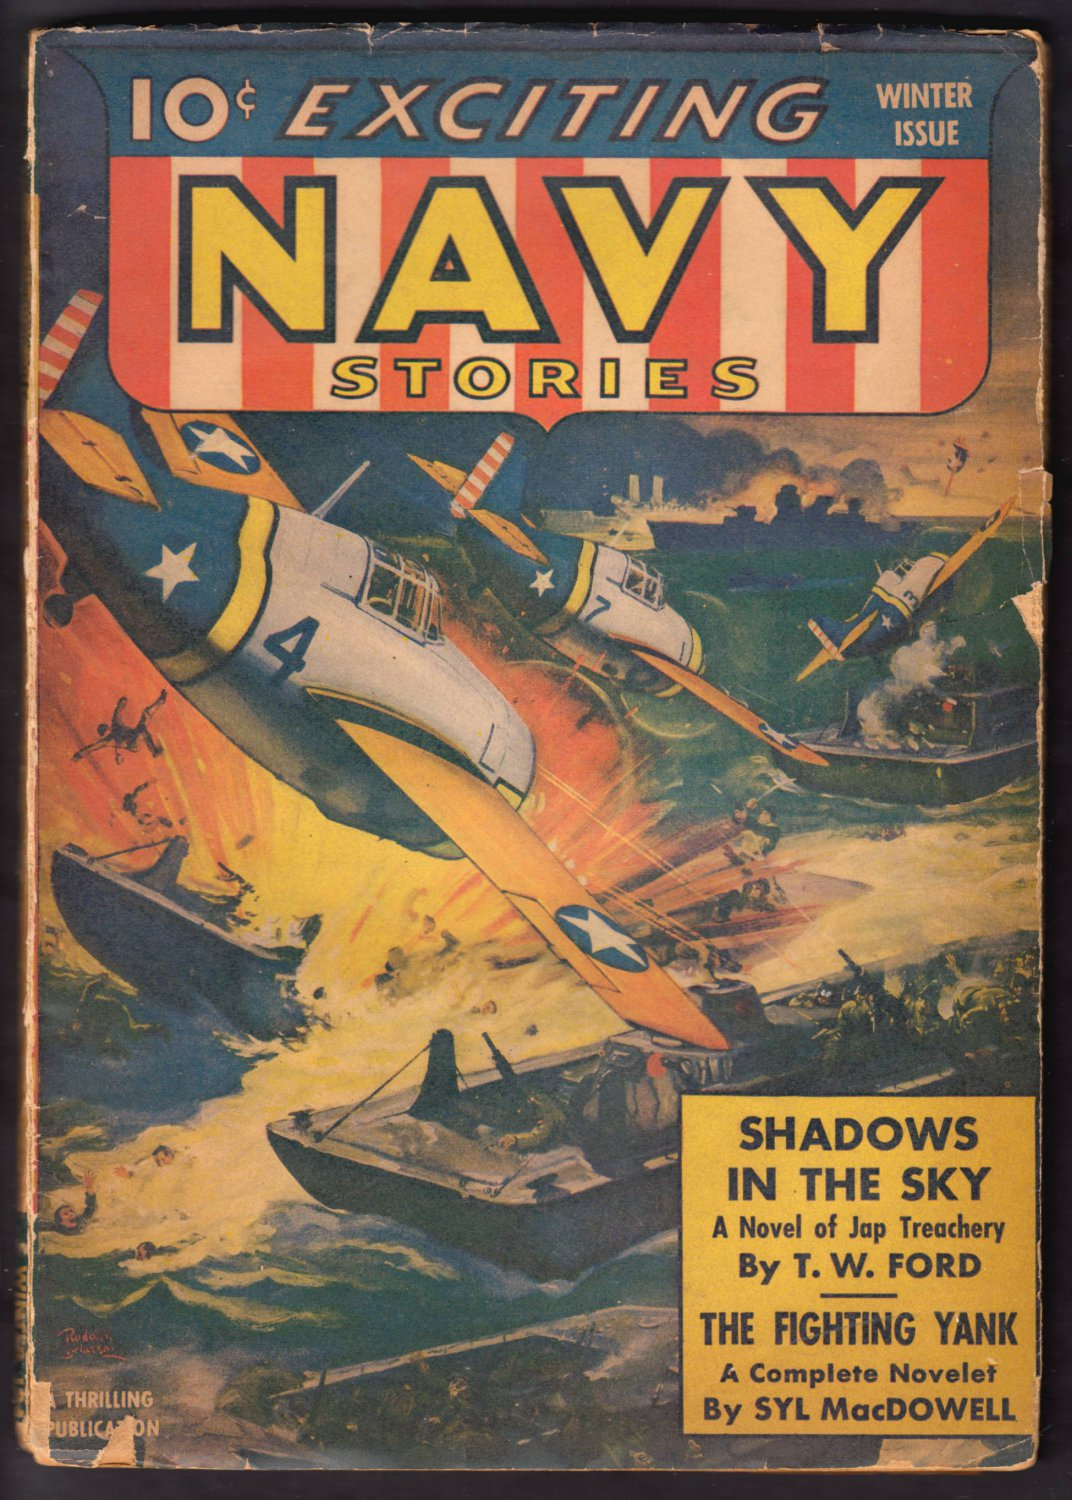 EXCITING NAVY STORIES WINTER ISSUE VOLUME 1 NUMBER 2 PUBLISHED 1942